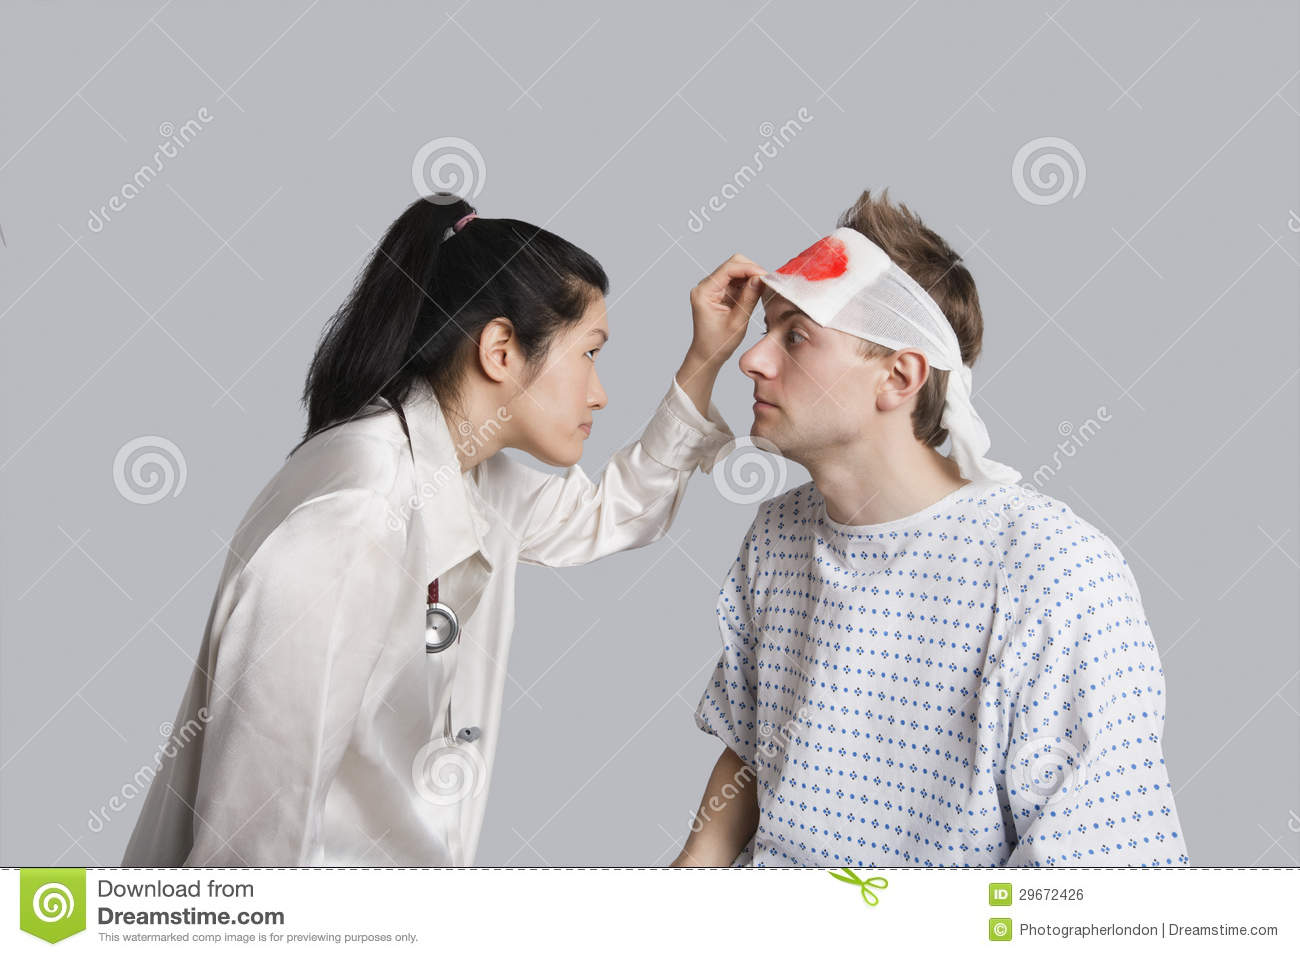 Female Doctors Examining Male Patients